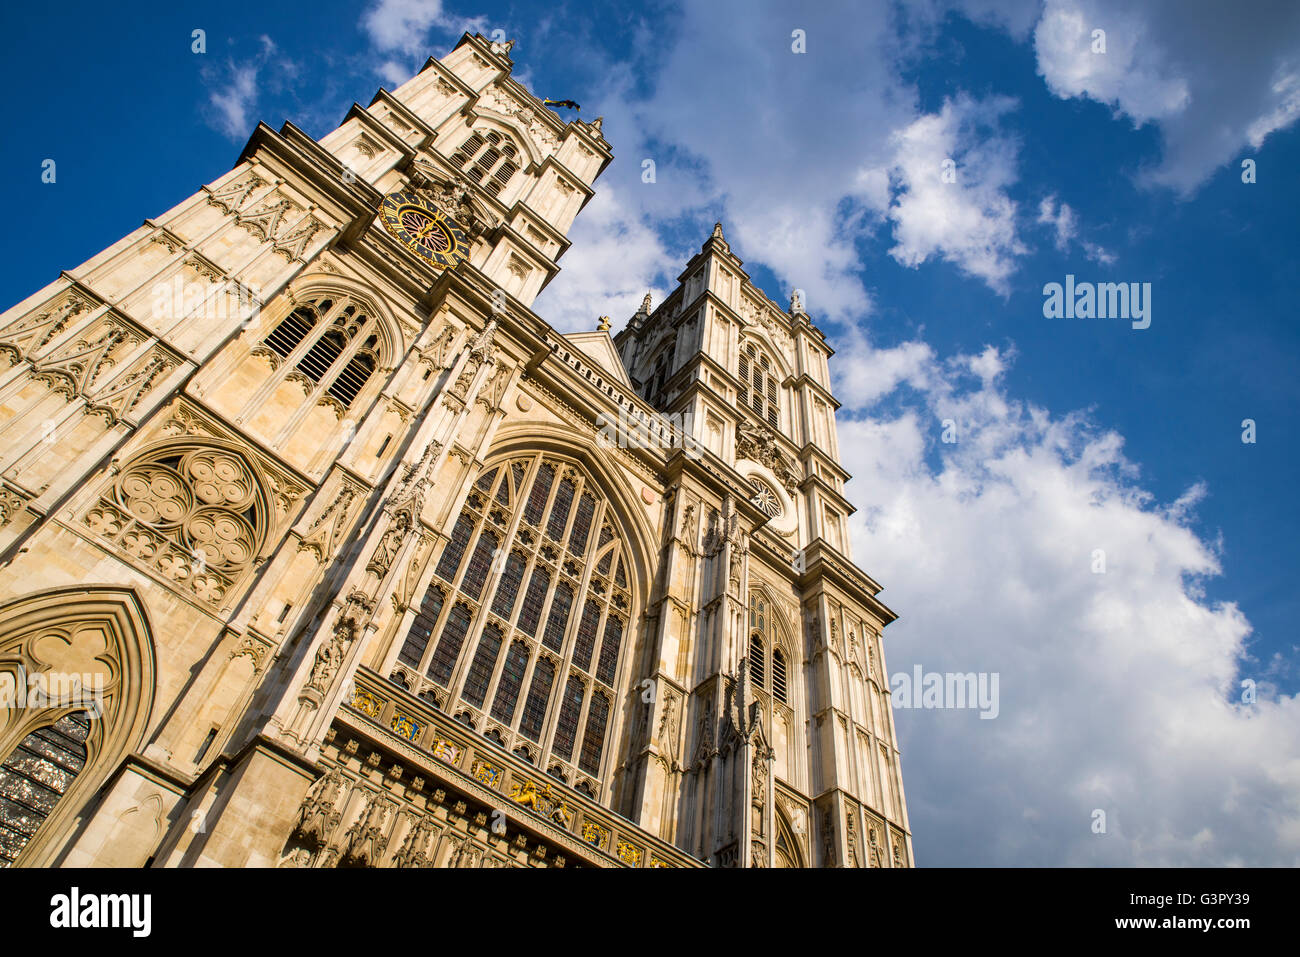 Looking up at the magnificent Westminster Abbey in London. Stock Photo